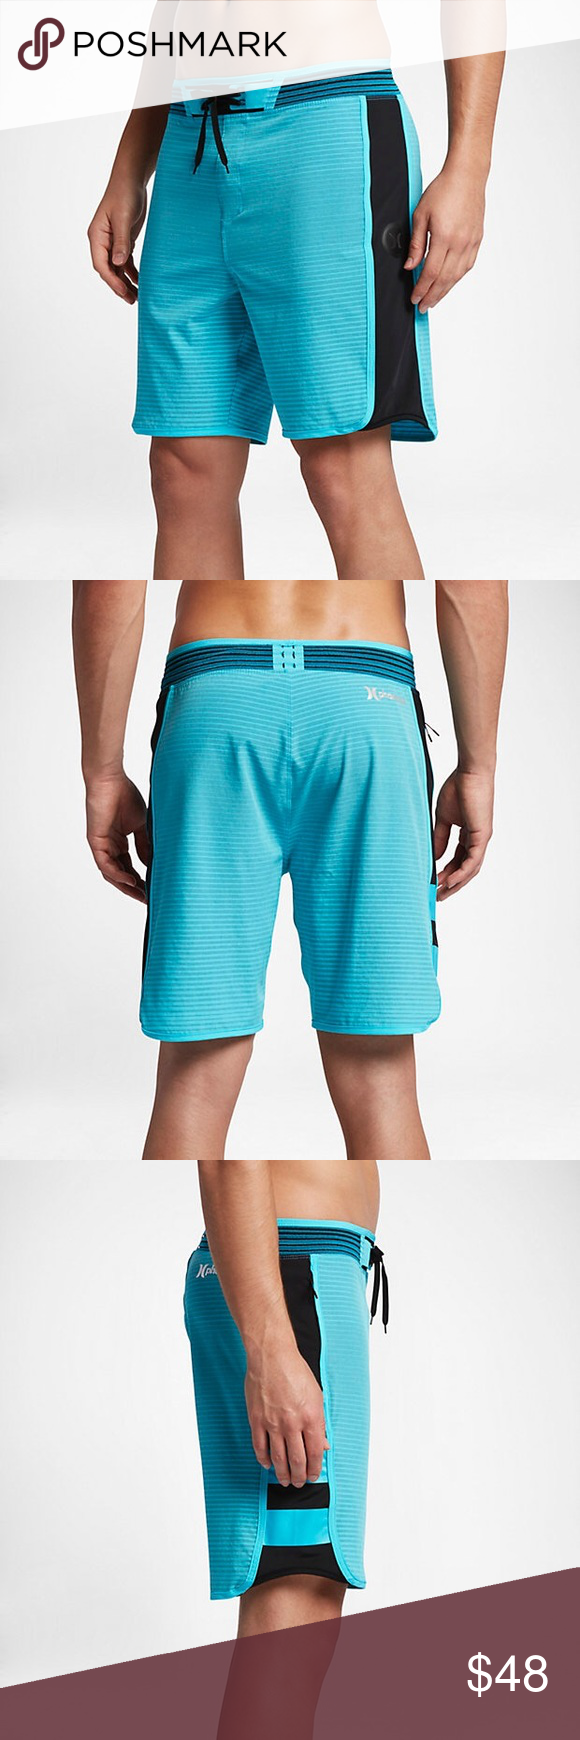 """1b78be67f0e HURLEY PHANTOM HYPERWEAVE MOTION STRIPE 18"""" SHORTS 🔘 Brand new with tags!  🔘 All"""